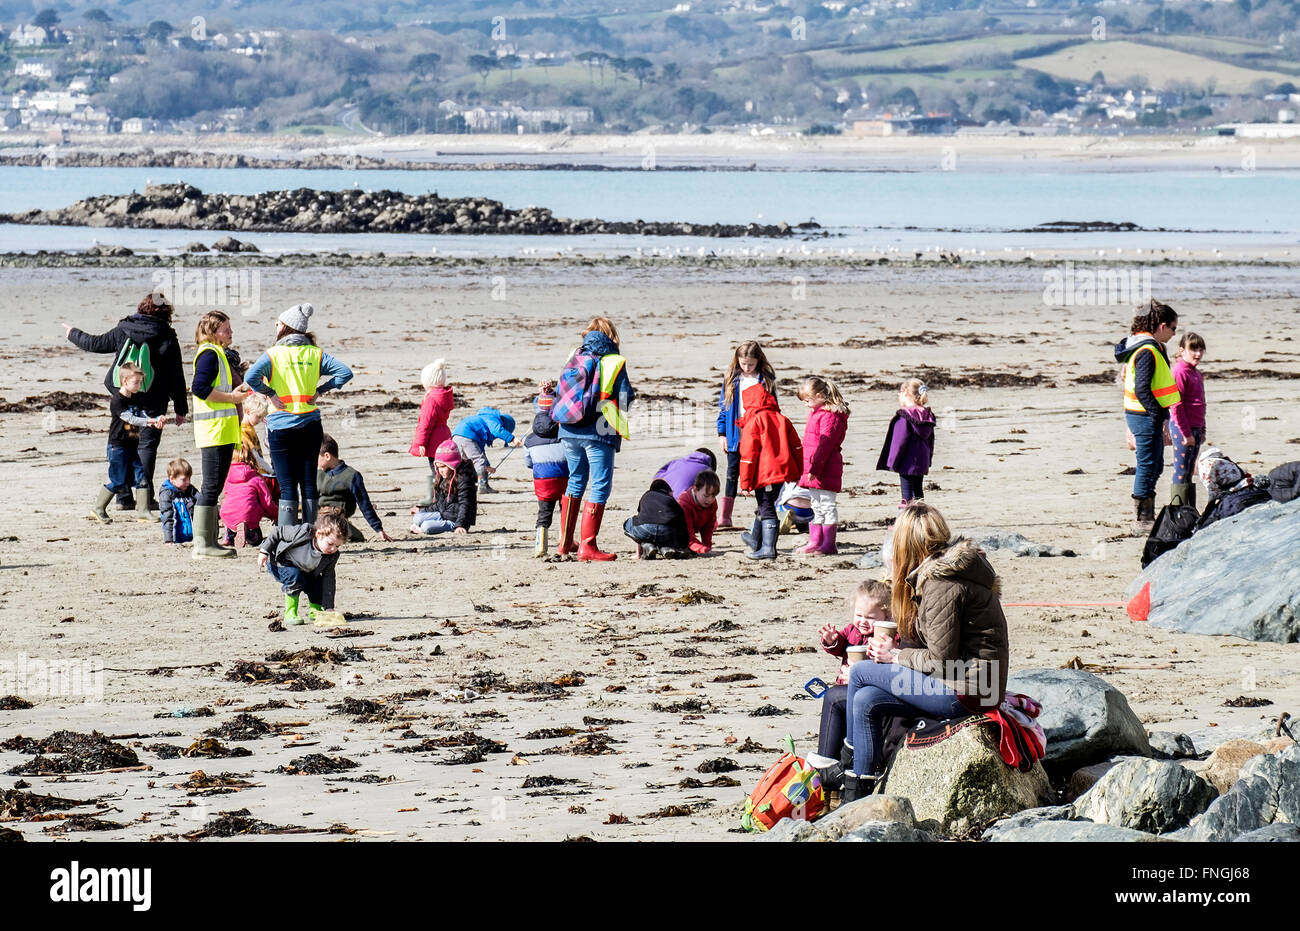 A primary school having lessons on the beach at Marazion in Cornwall, UK - Stock Image